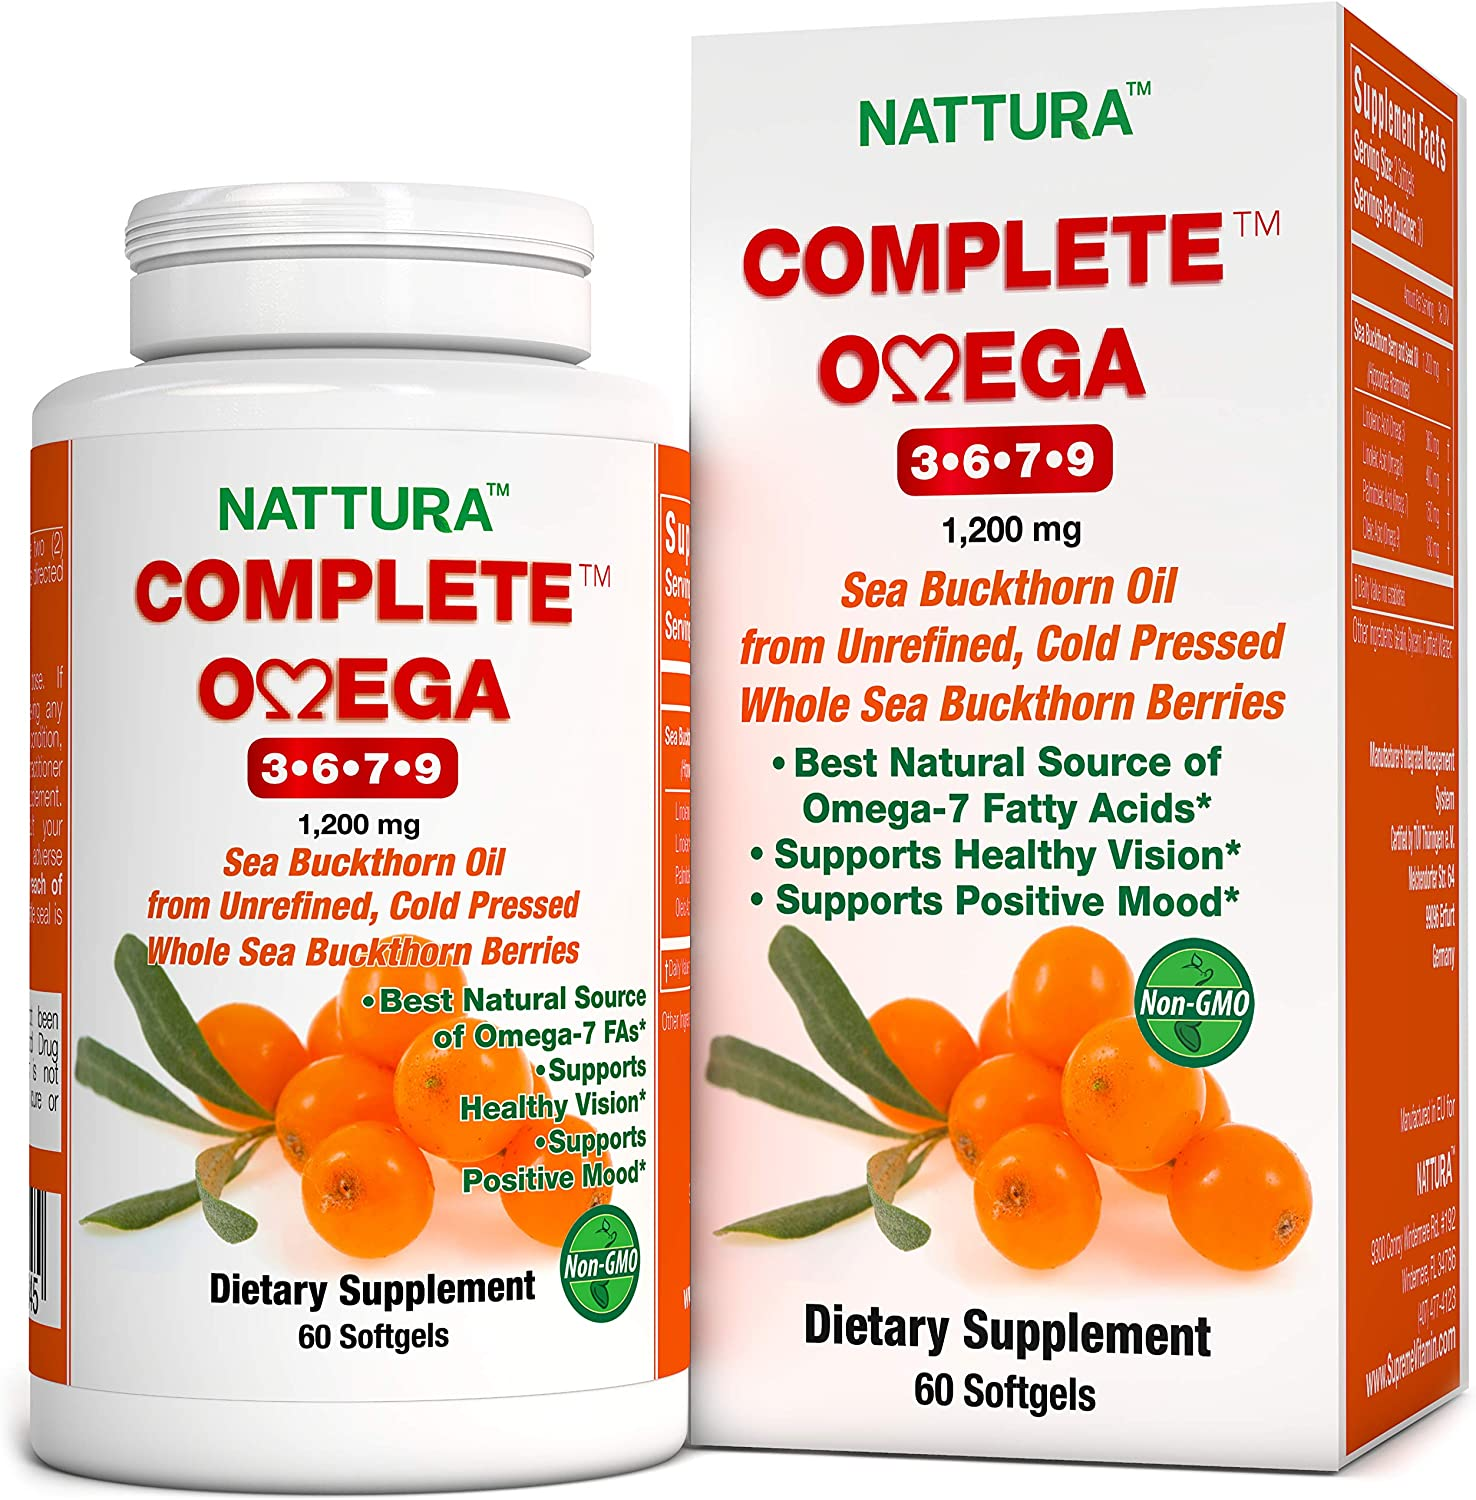 Amazon Com Complete Omega 3 6 7 9 Pure Sea Buckthorn Oil European Quality From Unrefined Cold Pressed Whole Sea Buckthorn Wild Berries Non Gmo Certified Kosher Gluten Free 1 Bottle 60 Capsules Health Personal Care